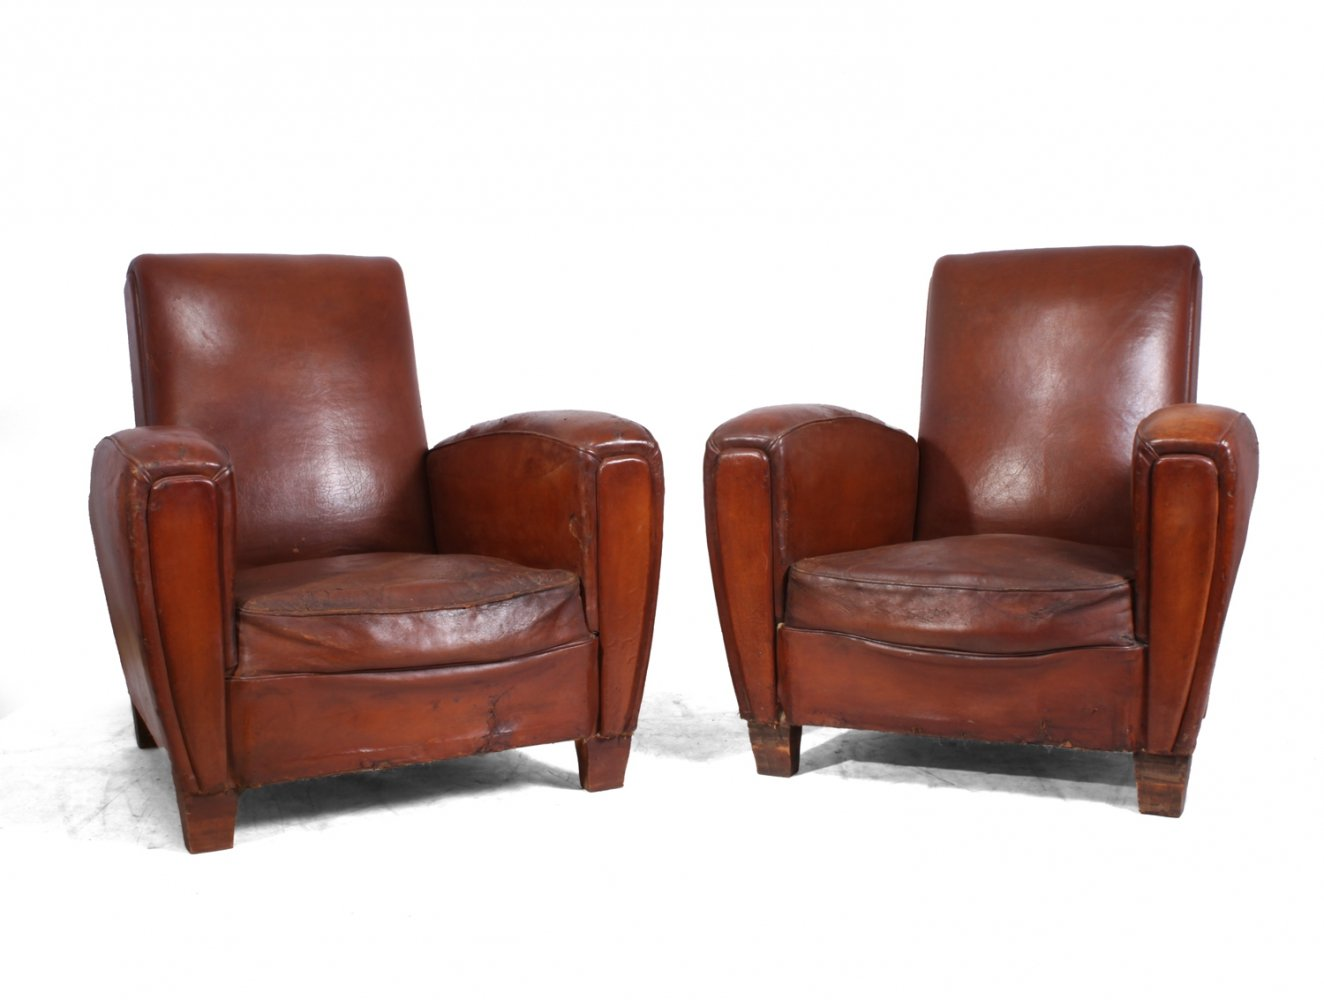 Pair of French Leather Club chairs, c1950